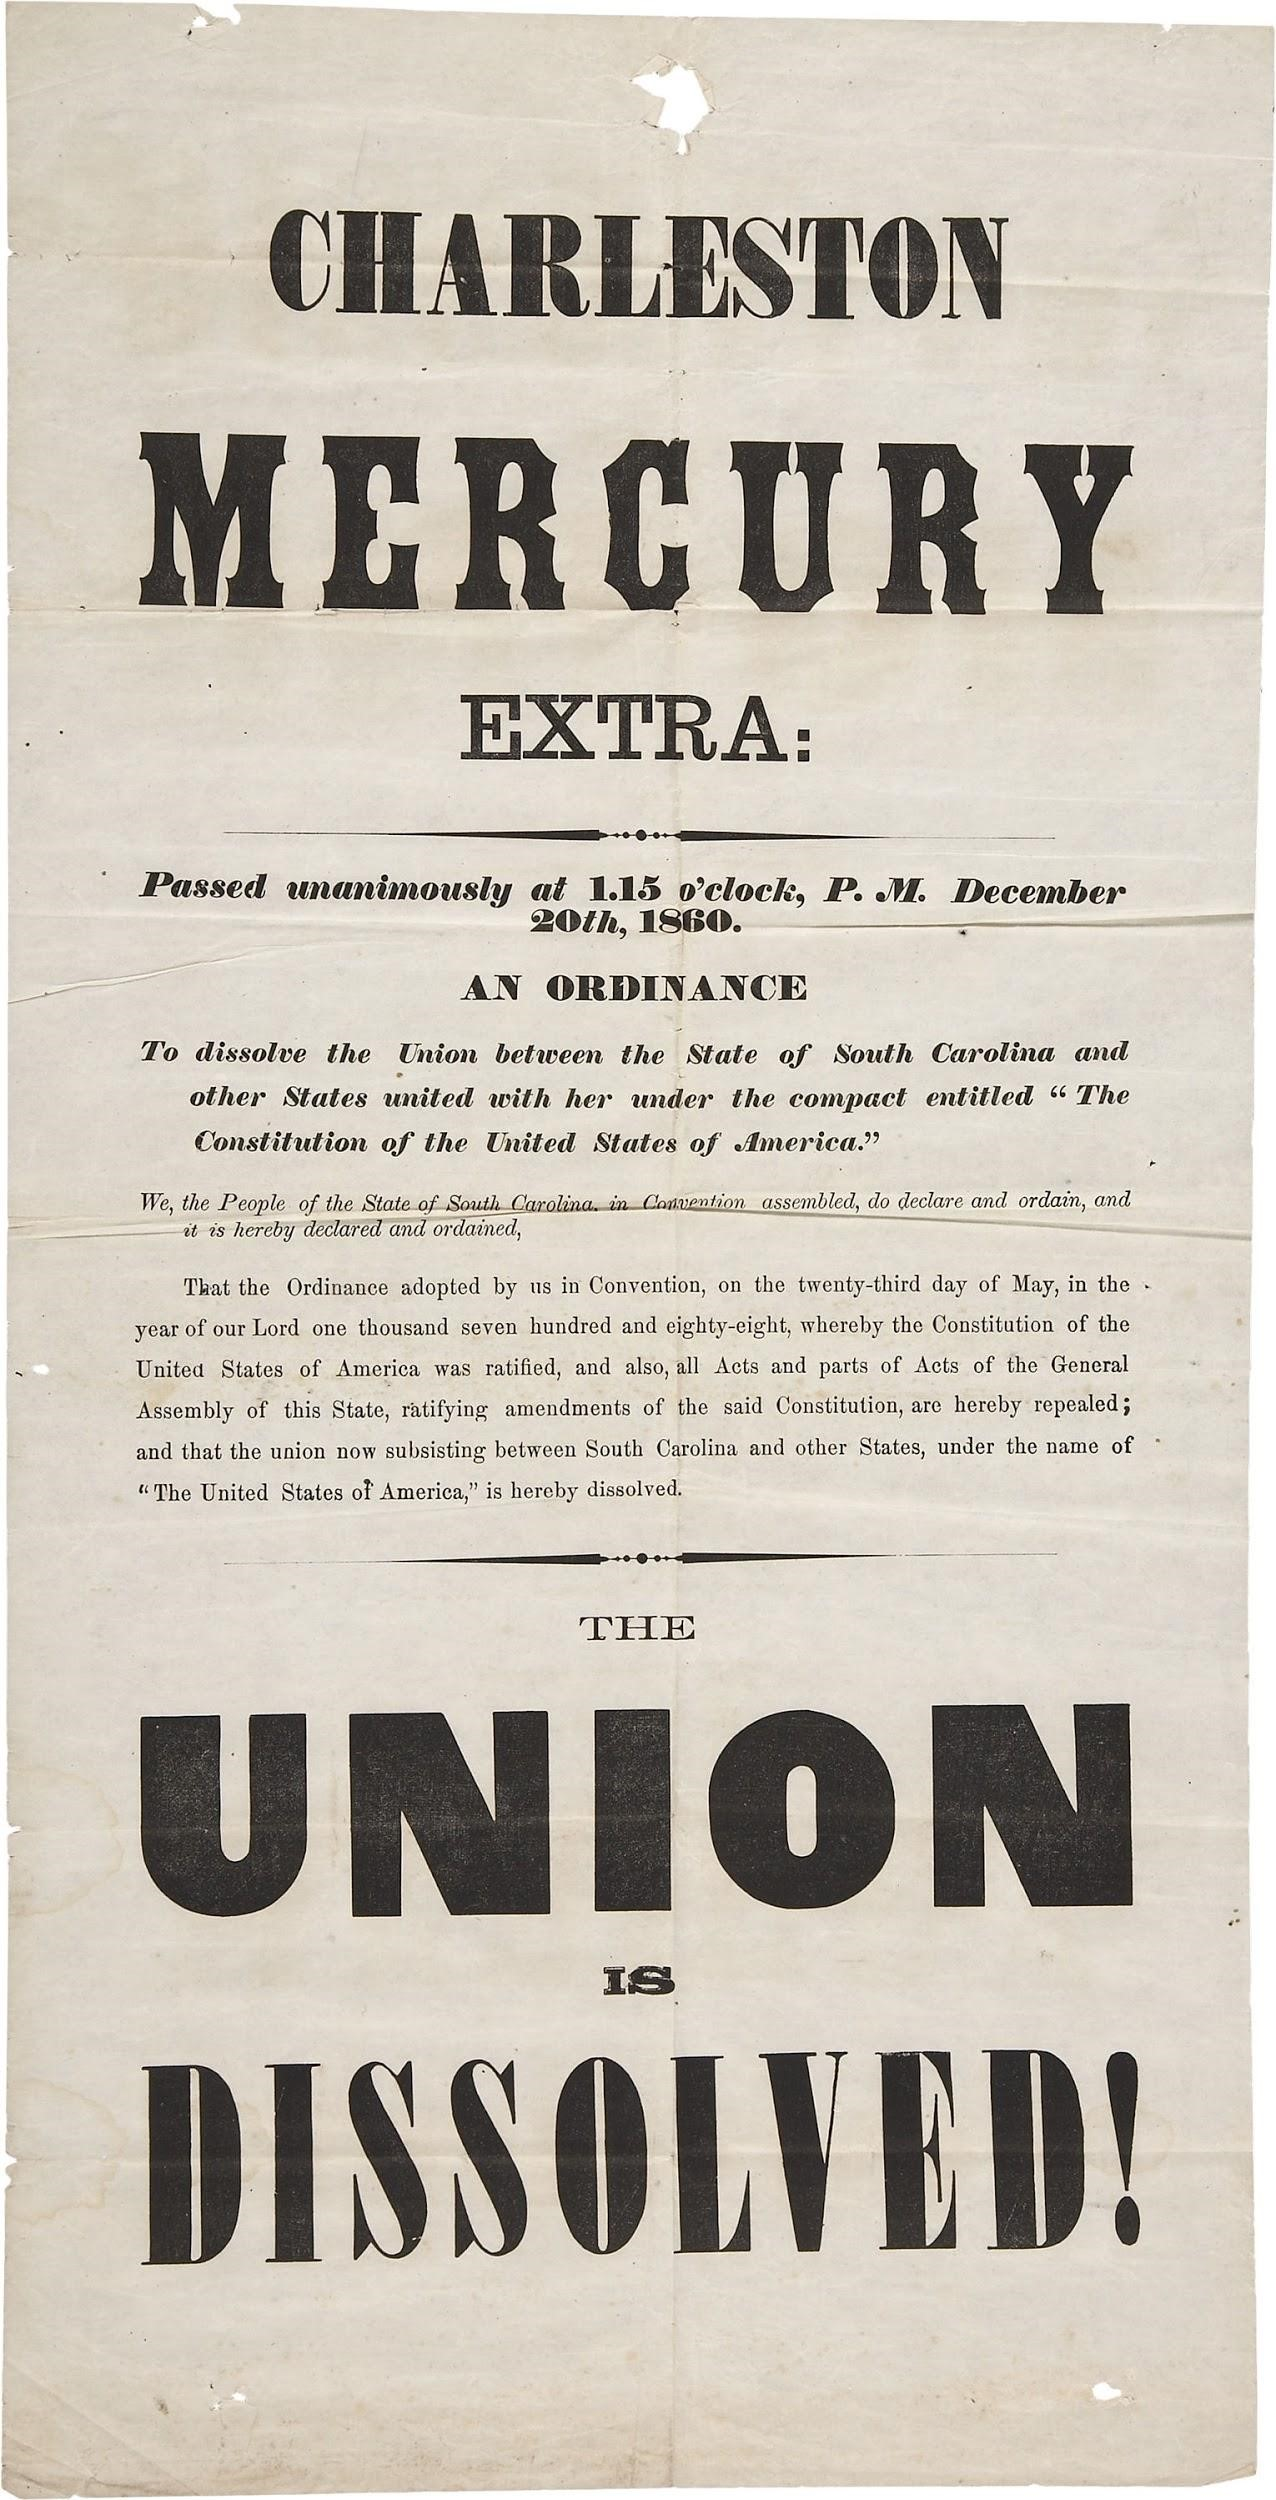 The Charleston Mercury announces South Carolina's secession from the Union, December 20, 1860.